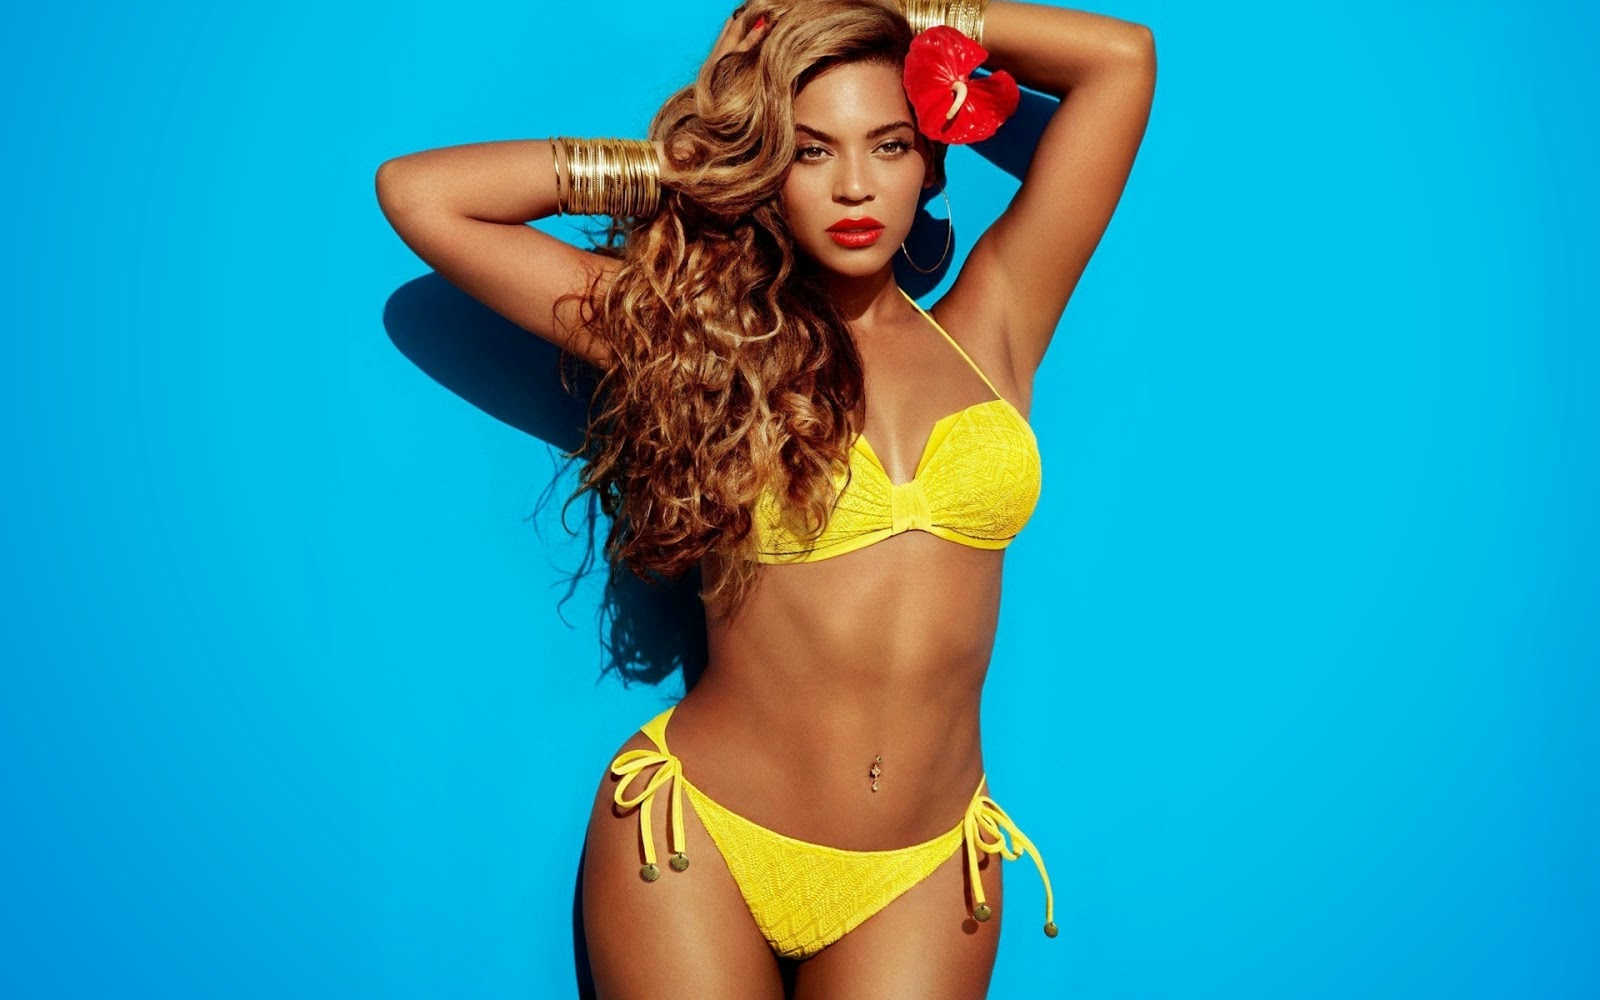 source: http://newbeyoncee.blogspot.com/2015/03/how-to-get-body-like-beyonce-2015.html#.VpSIjBUrLIU